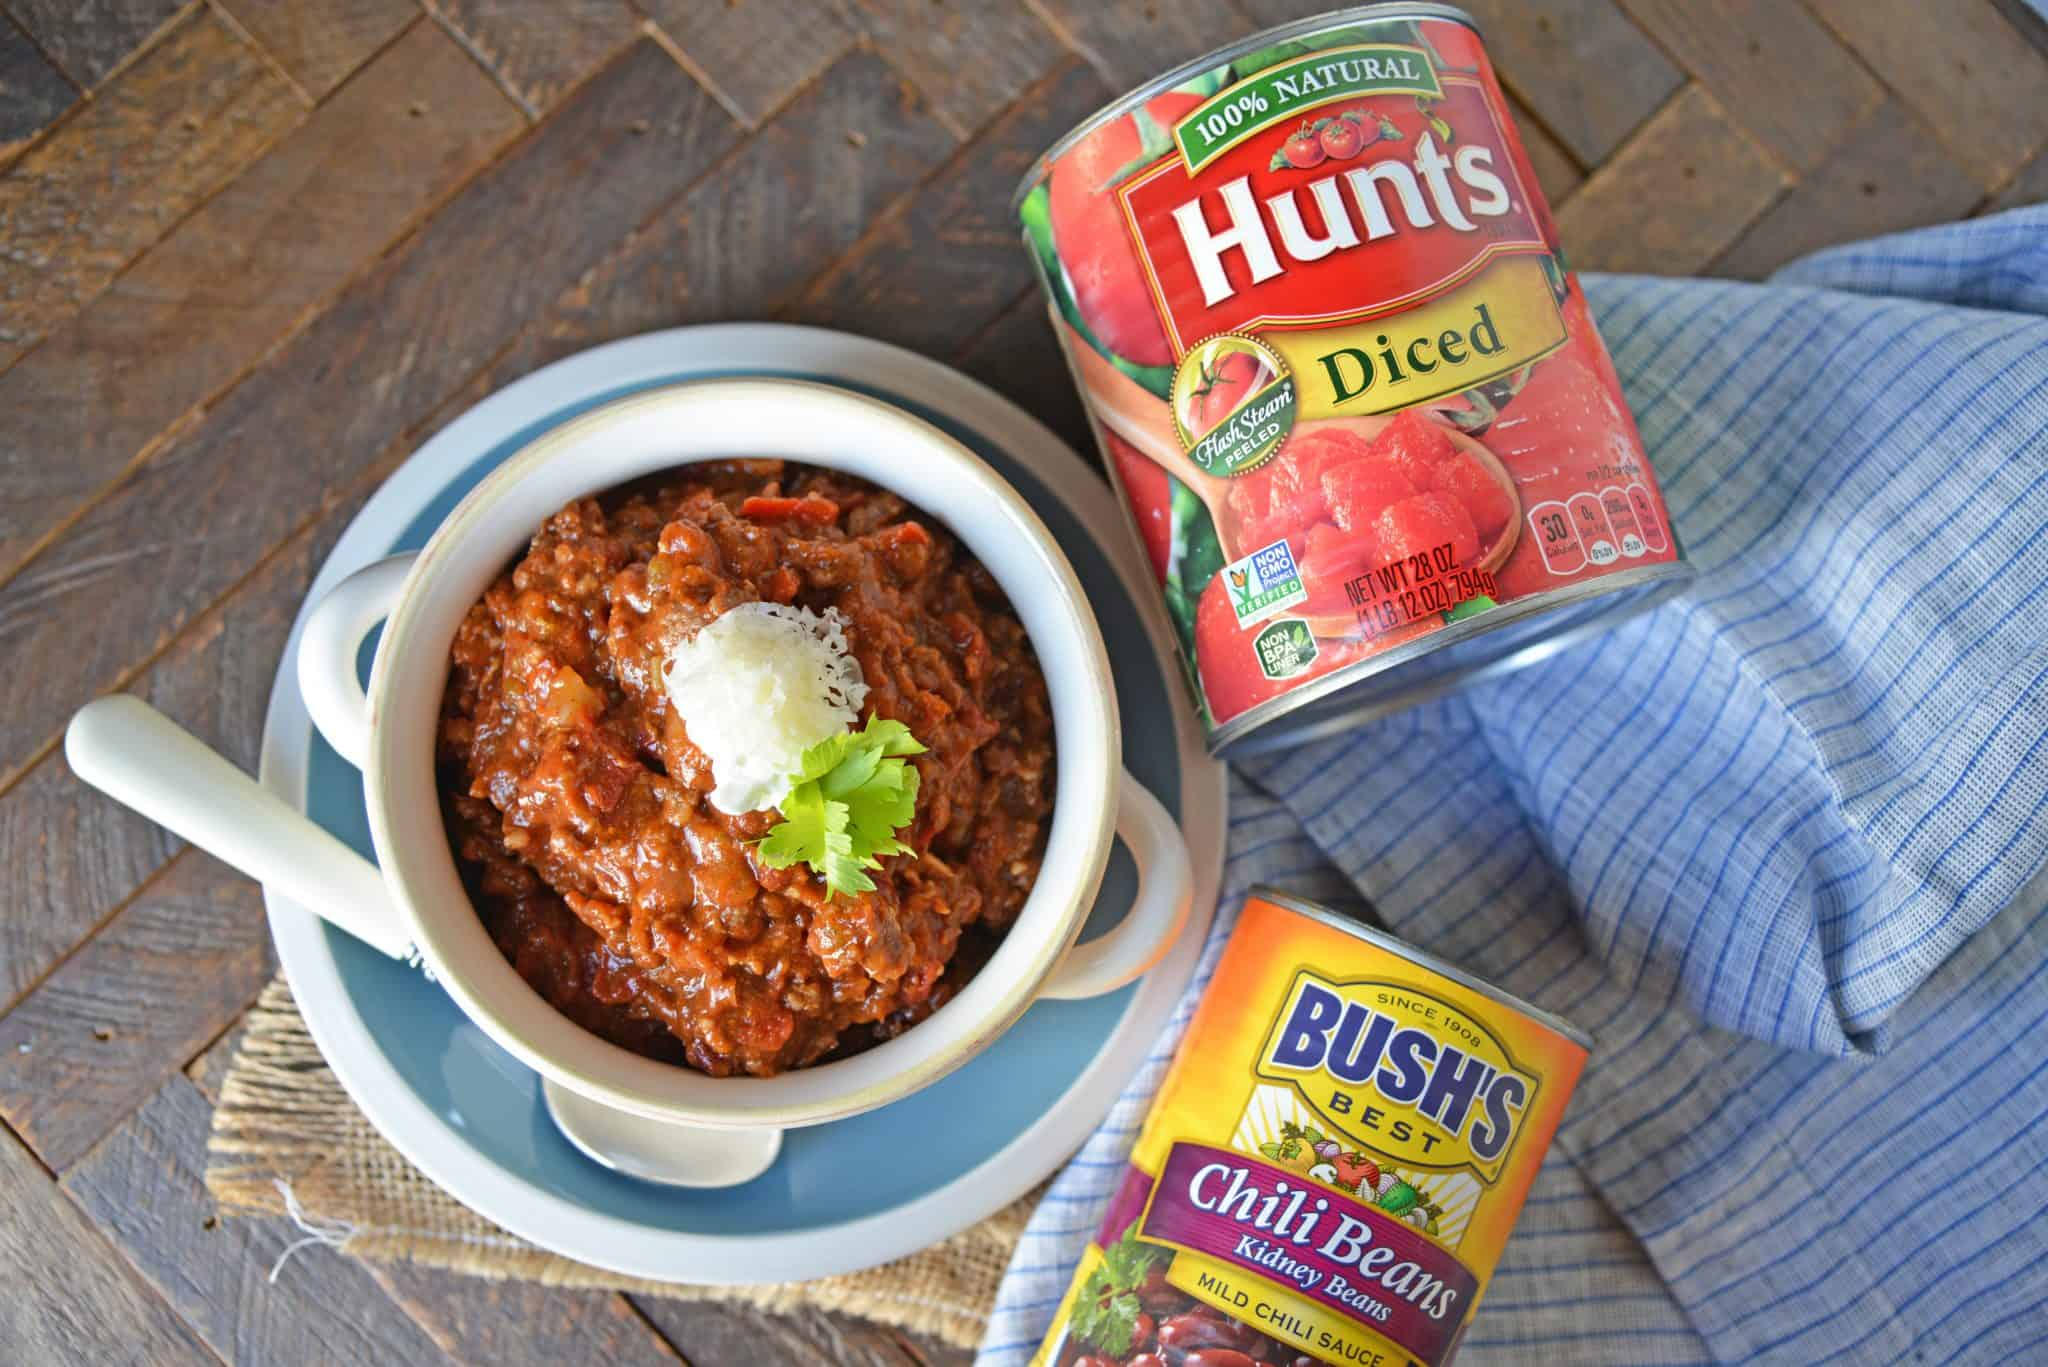 Blue Ribbon Award Winning Chili is, you guessed it, a chili cook-off winning recipe! A robust and rich stew loaded with beef, sausage, bacon and tons of vegetables. The best chili recipe ever! #awardwinningchili #bestchilirecipe www.savoryexperiments.com